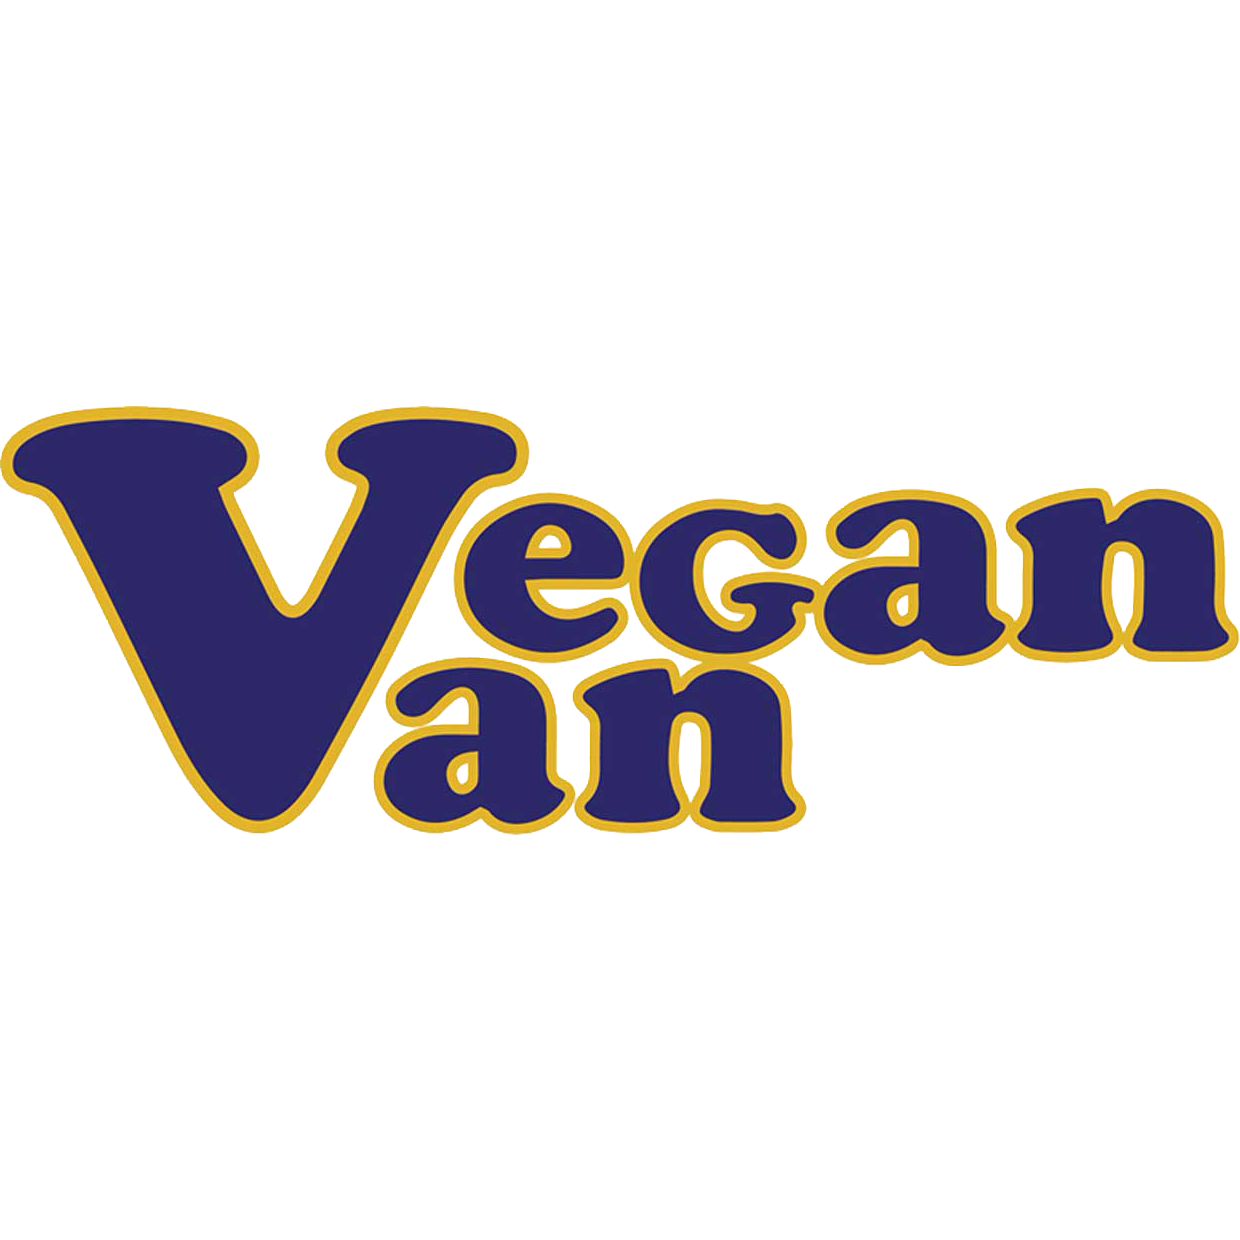 Vegan Van    Our menu will always be 100% vegan. We will source locally whenever possible and we will remain conscious of our impact on the environment, and of course, our impact on the animals.